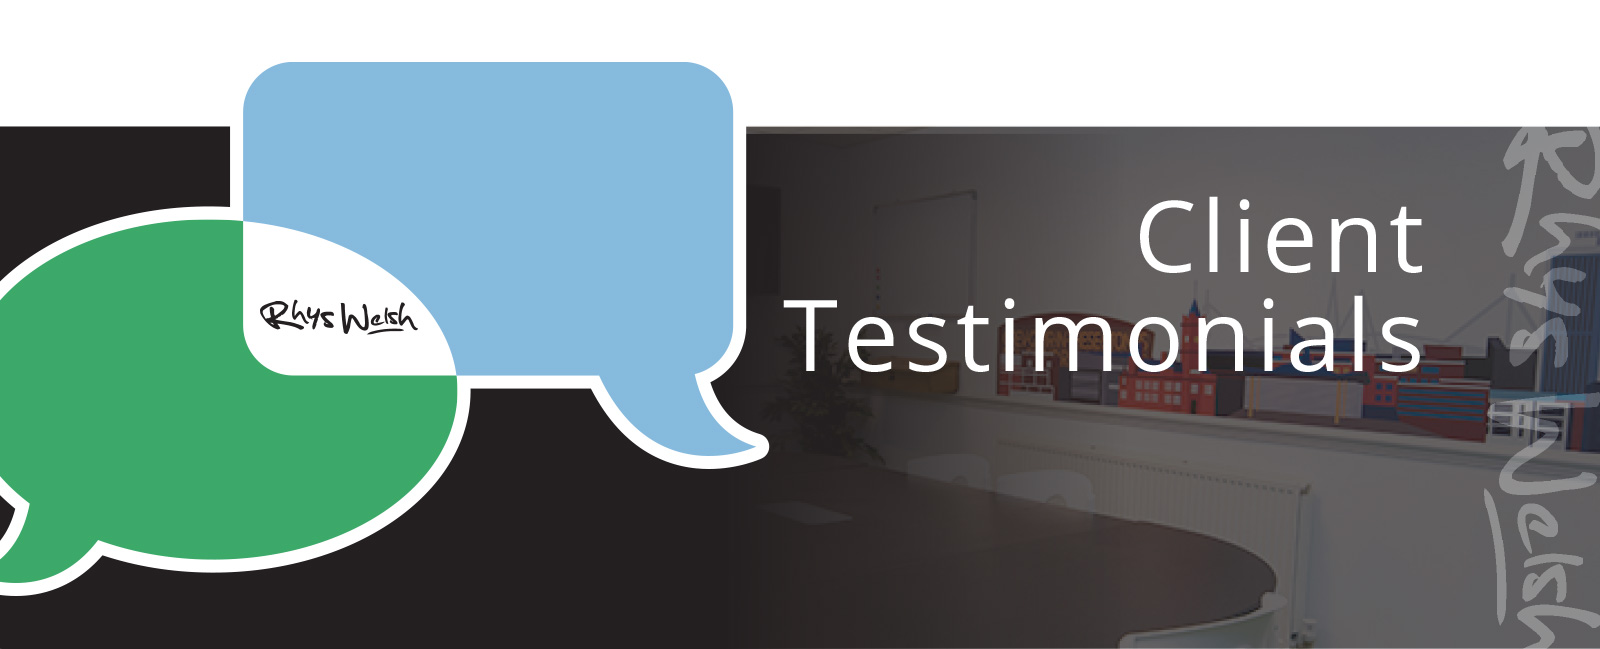 Clients Testimonials Web Design for cardiff